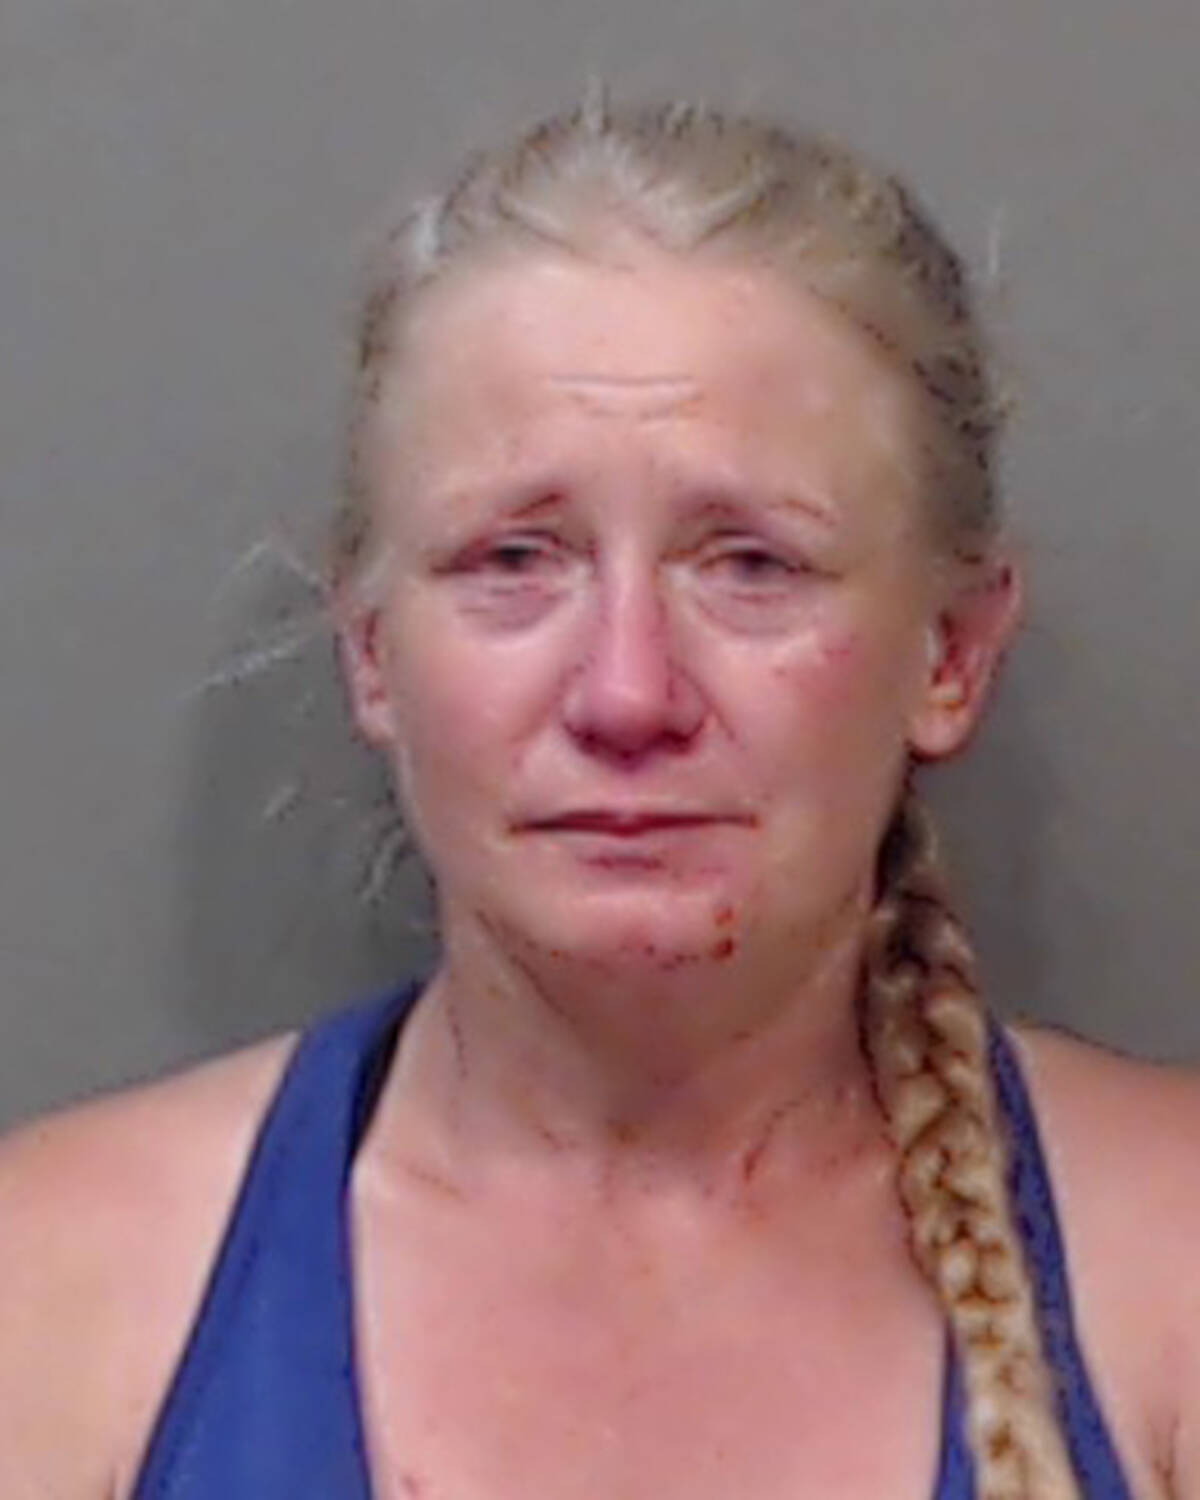 """Name: MCDONALD, Raina Age: 42 Height: 5'2"""" ft Weight: 115lbs Hair: Blonde Eyes: Blue Wanted: Breach of Release Order Warrant in effect: September 14, 2021 Parole Jurisdiction: Chilliwack, BC"""